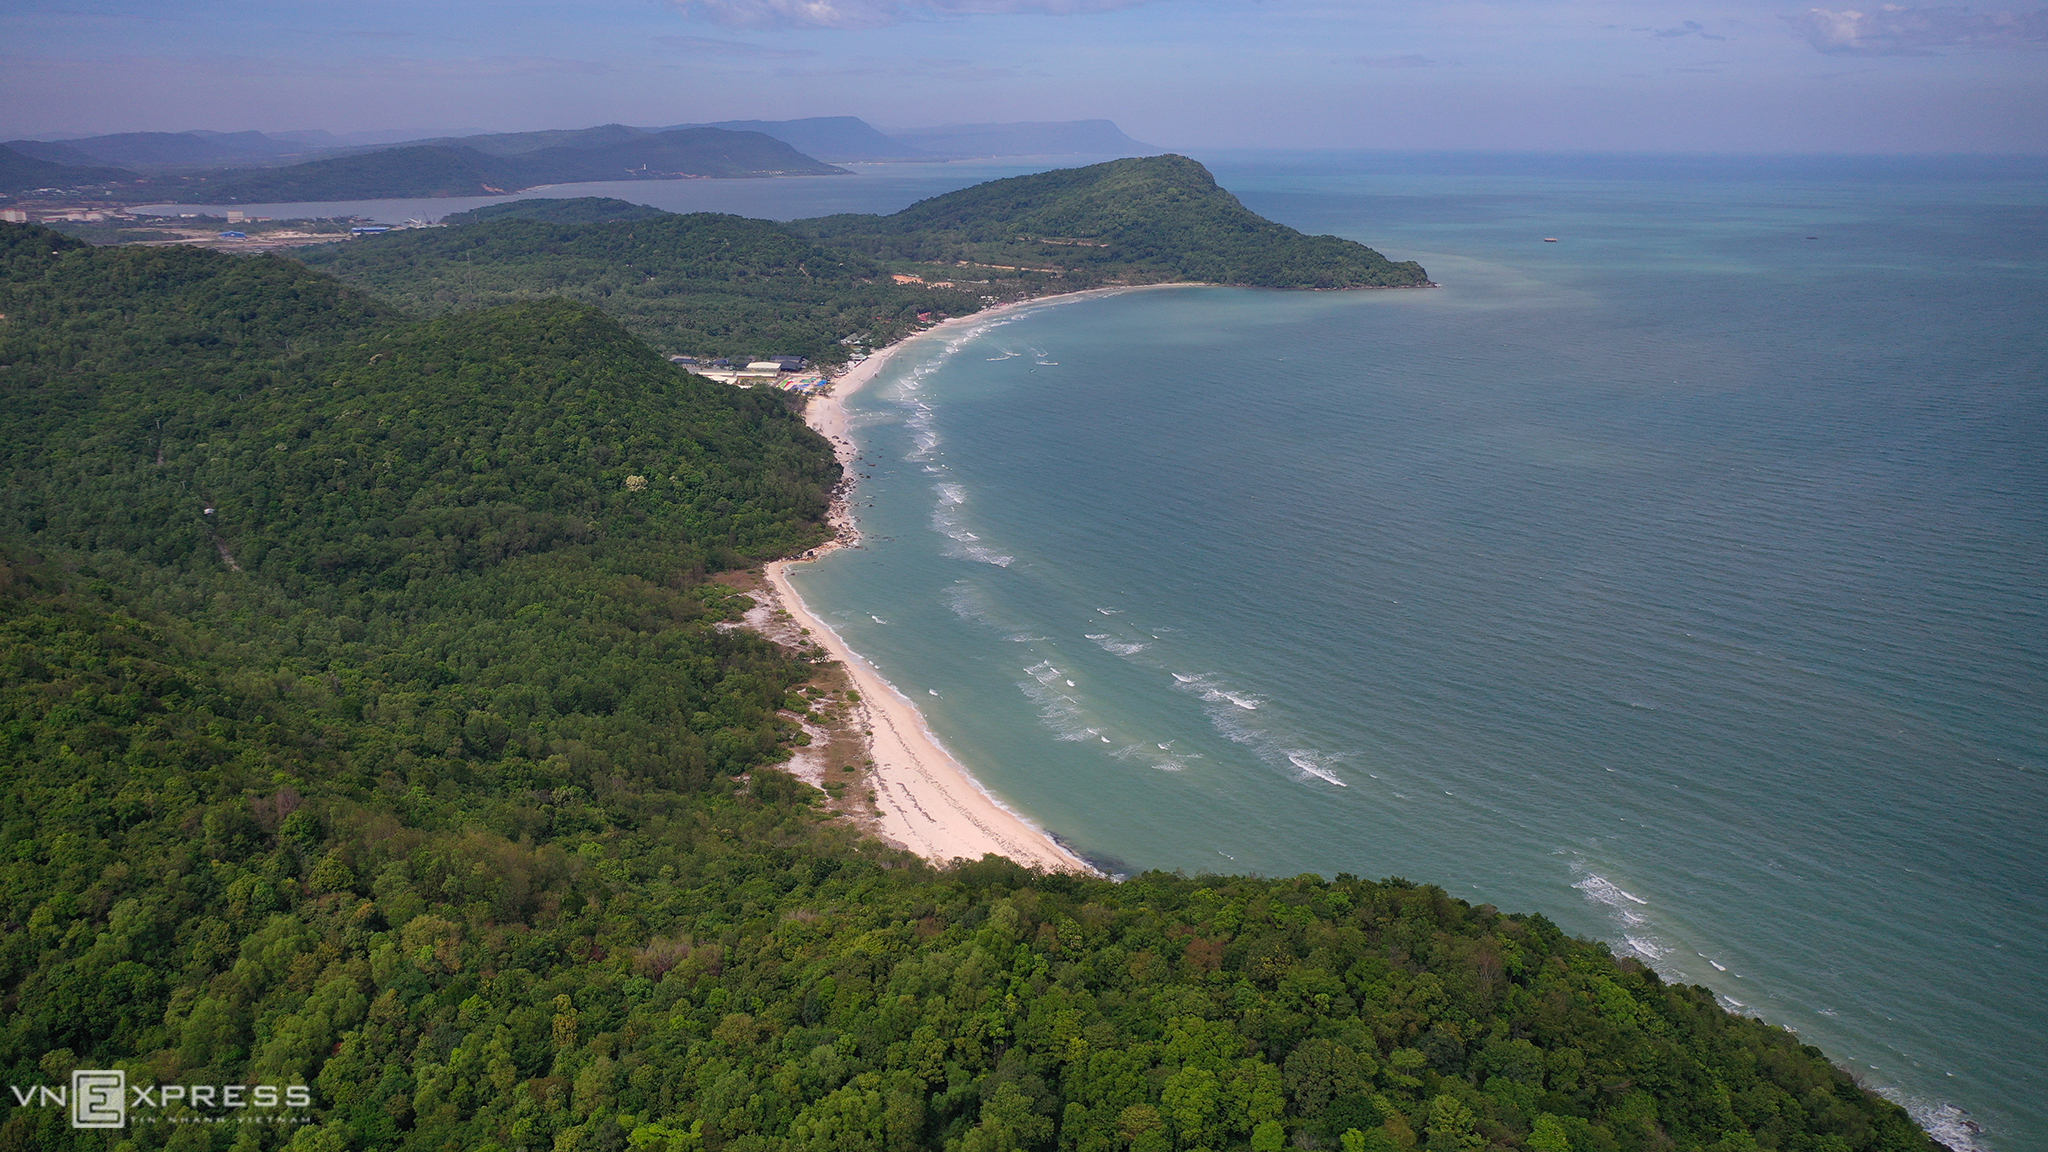 The beauty of Phu Quoc, Vietnam's first island city